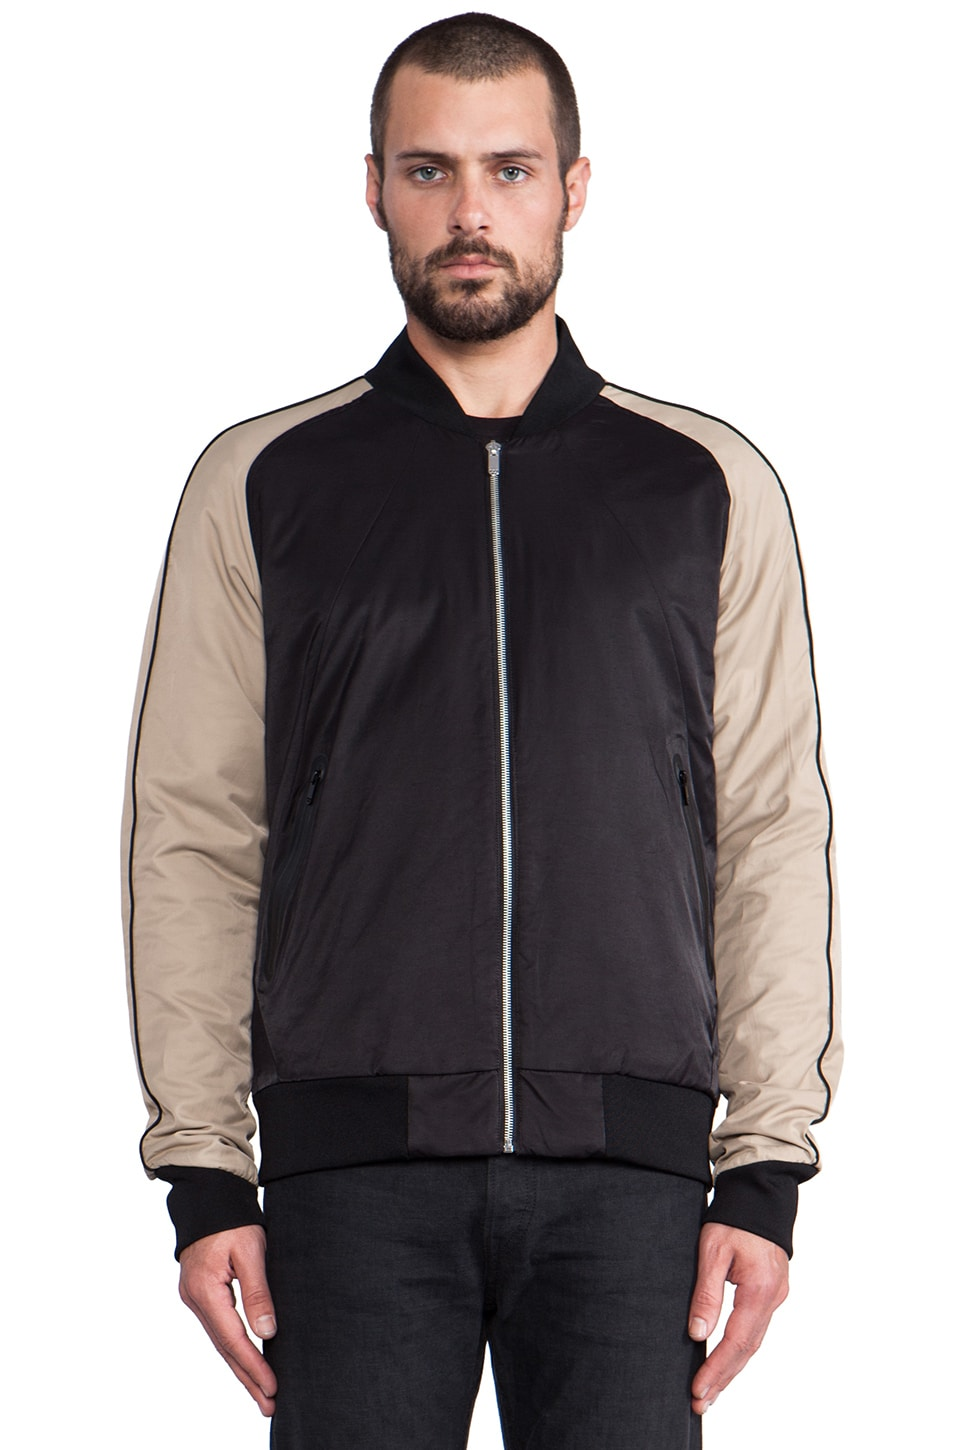 G-Star x Marc Newson Tour Jacket in Black & Grege